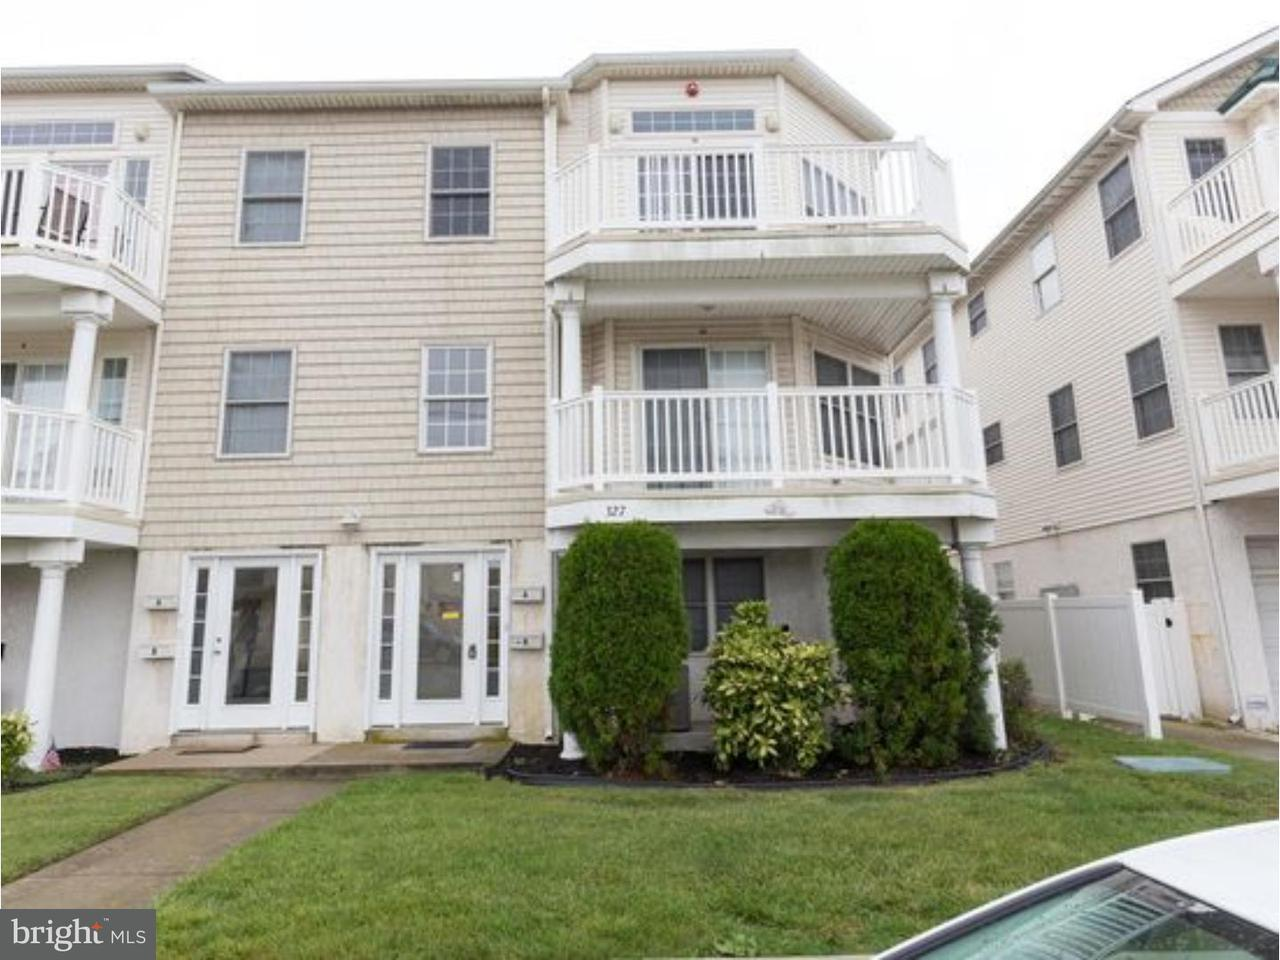 Townhouse for Sale at 327 E WILDWOOD AVE #A10 Wildwood, New Jersey 08260 United States